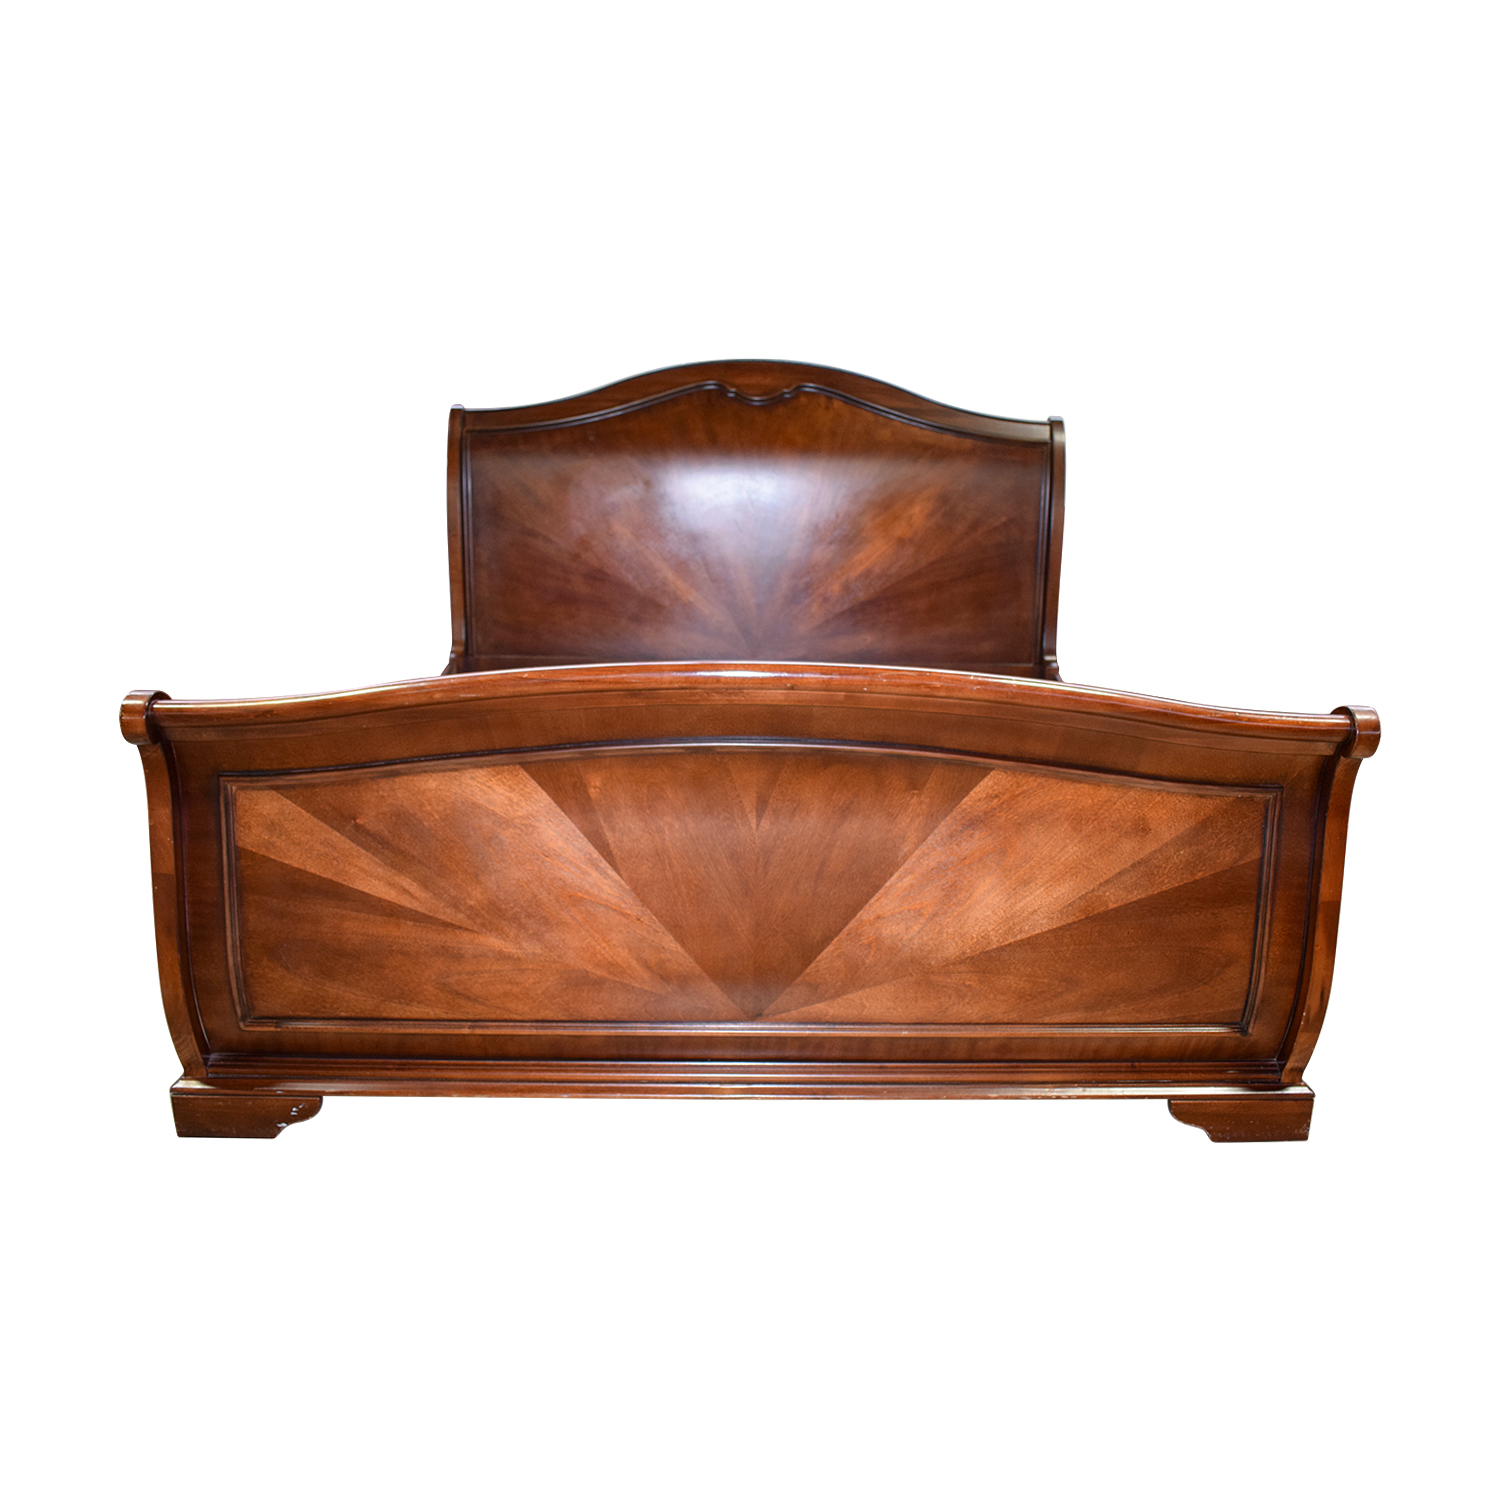 Raymour & Flanigan Raymour & Flanigan Wood King Sleigh Bed brown